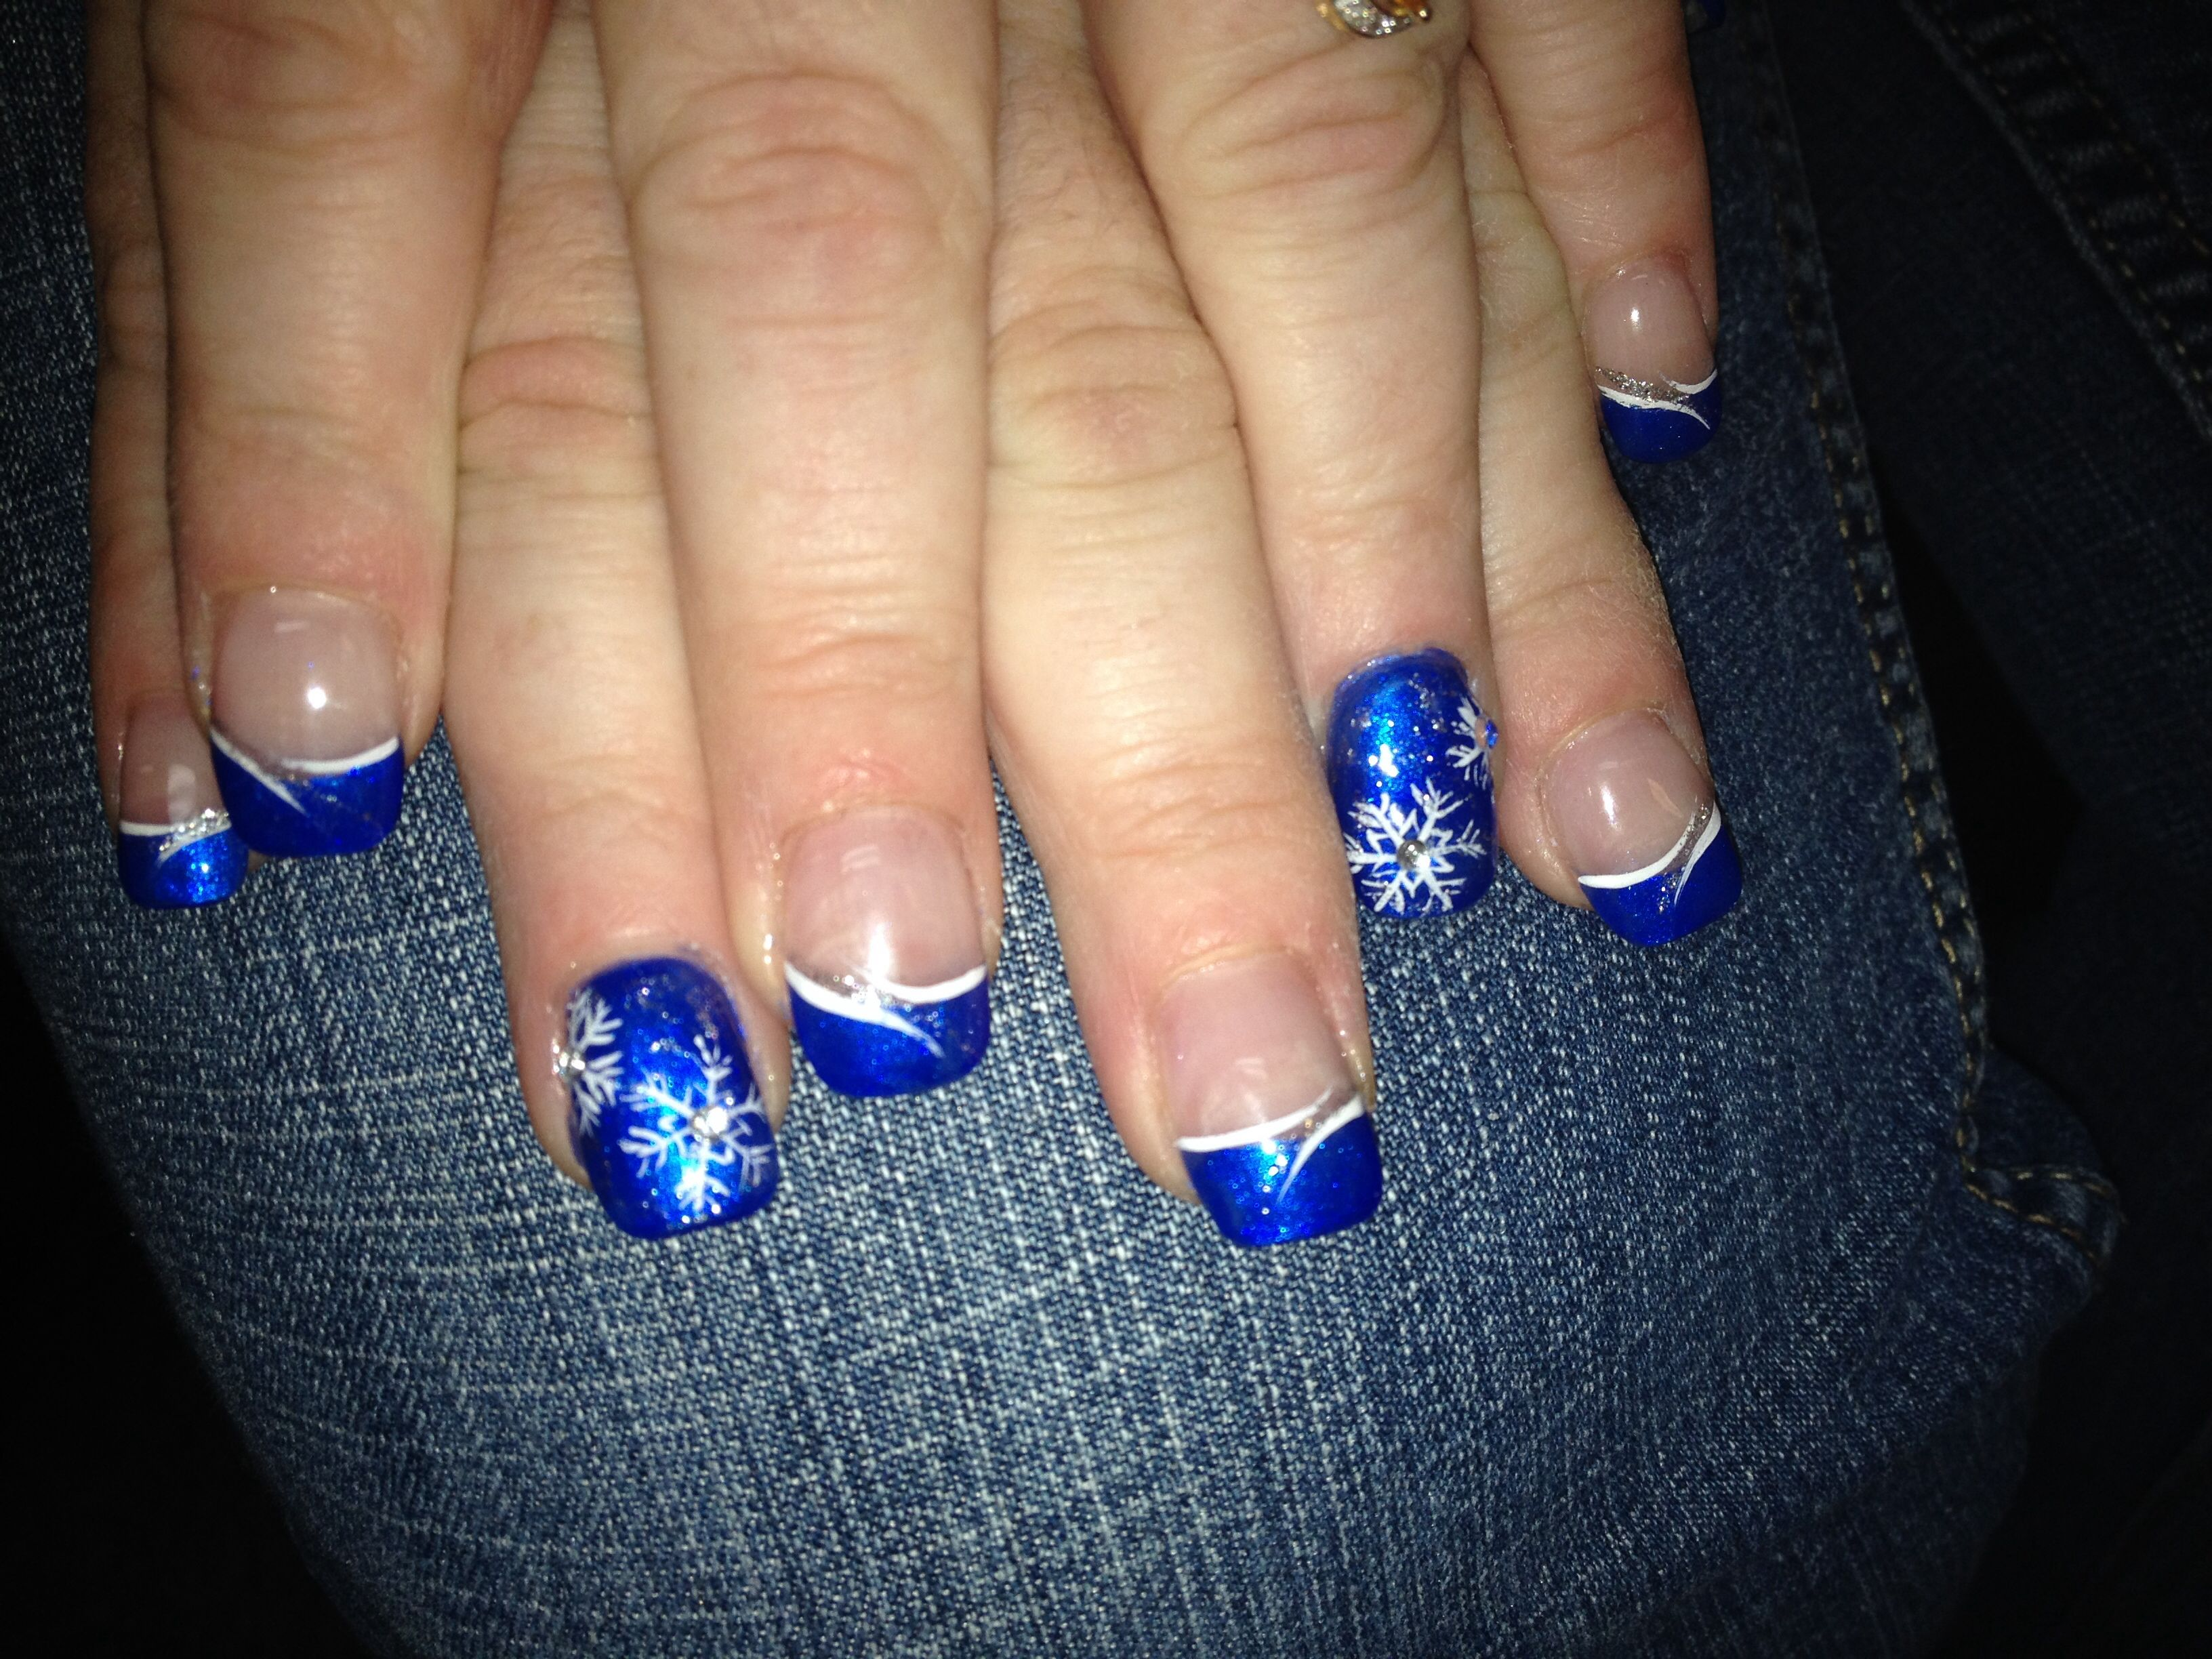 Blue Nails With Snowflakes Design On The Ring Fingers Winter